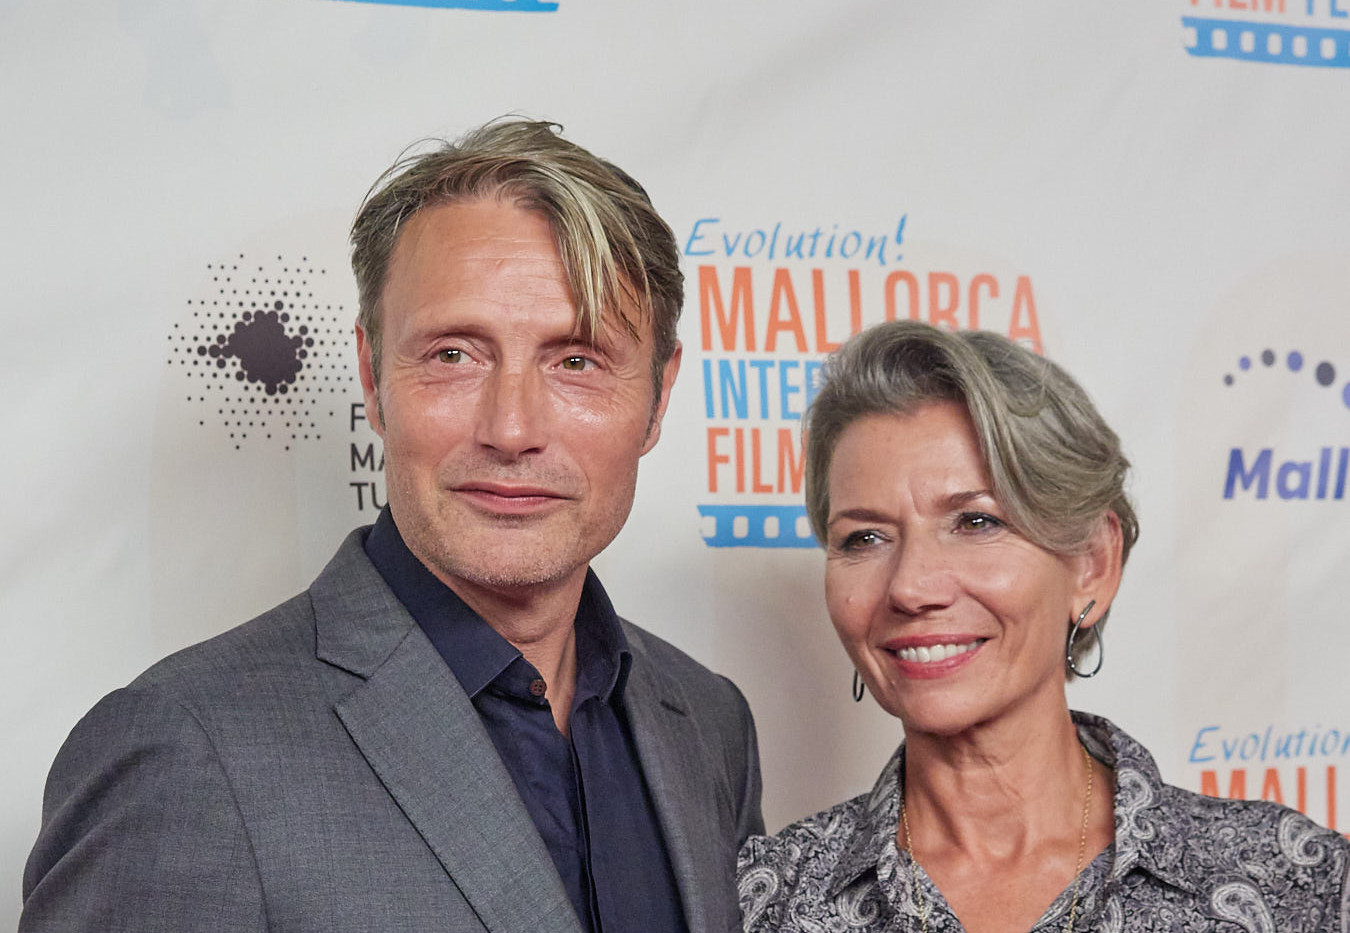 Mads with wife Hanne Mikkelsen